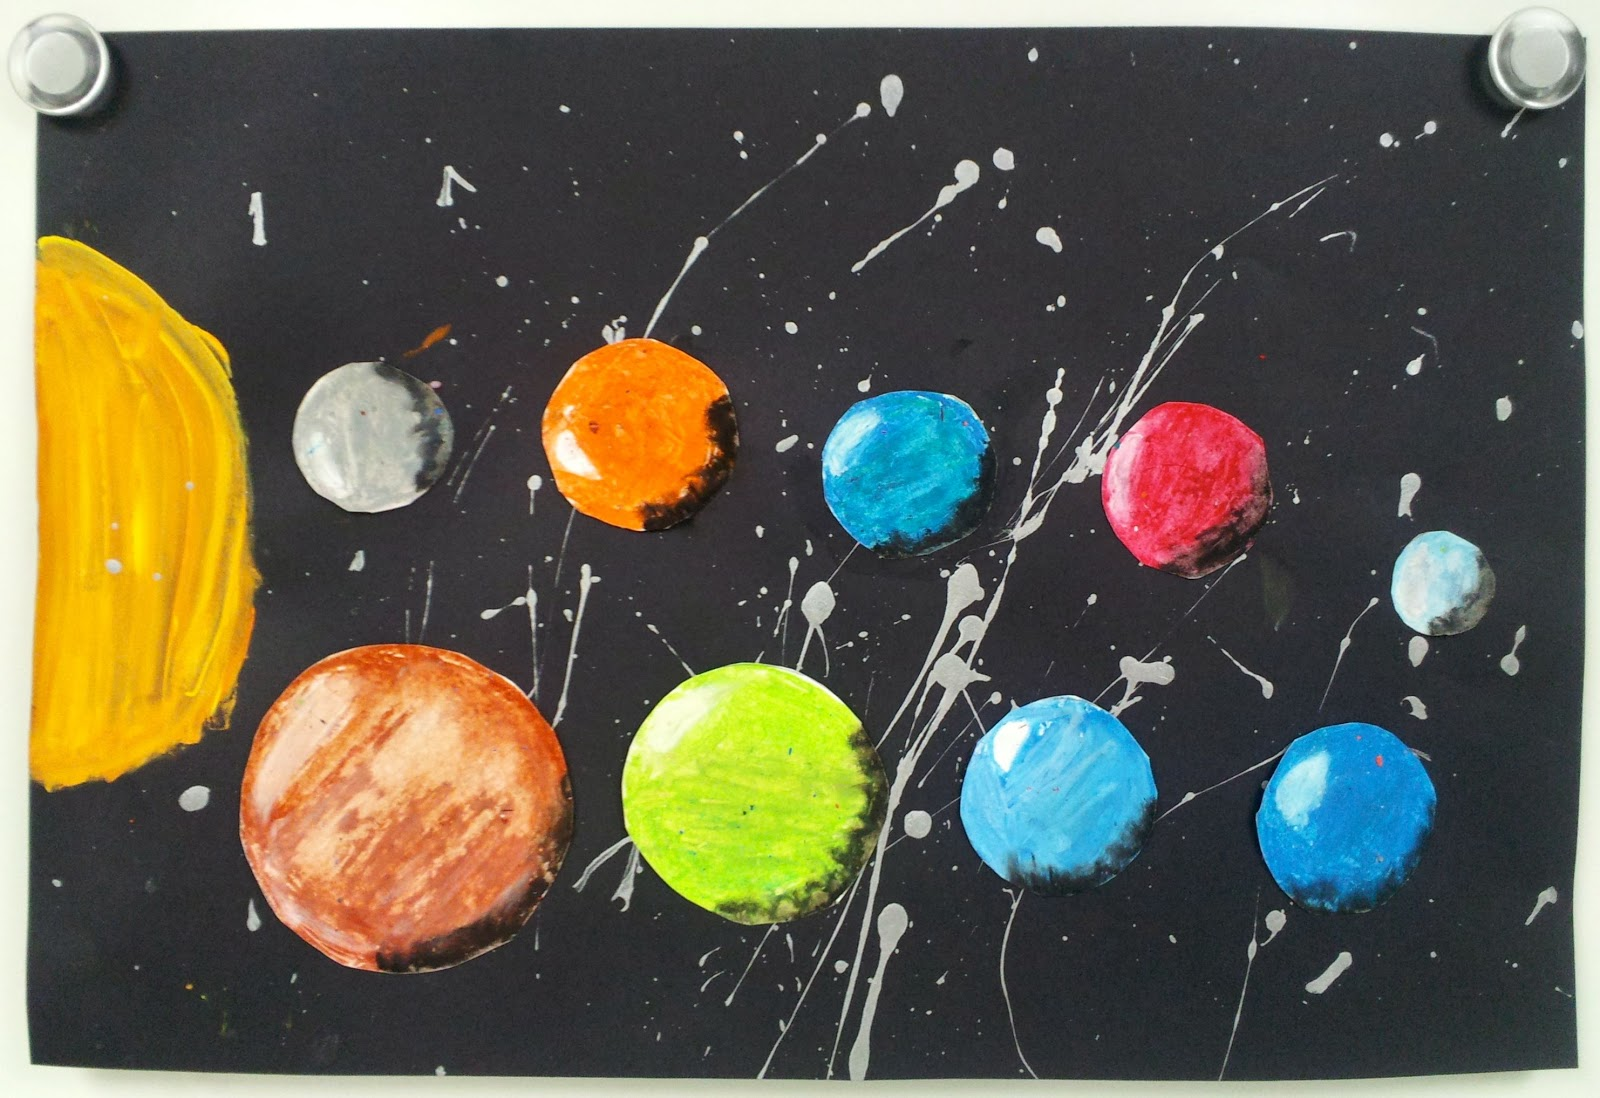 How to Make a Model of the Solar System for the Fifth Grade